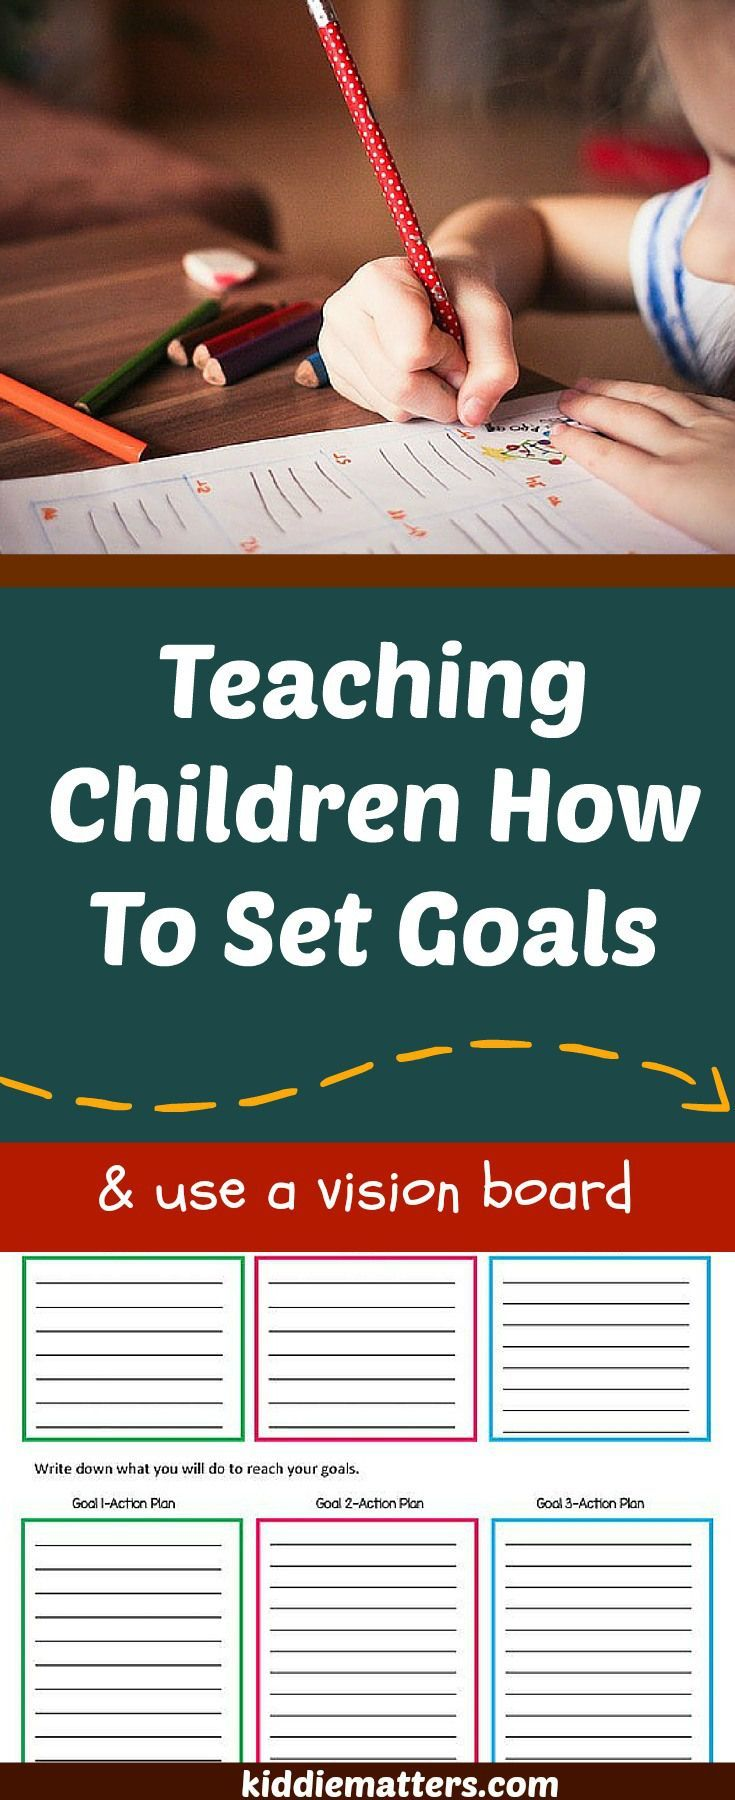 Teaching Children To Set Goals And Use A Vision Board